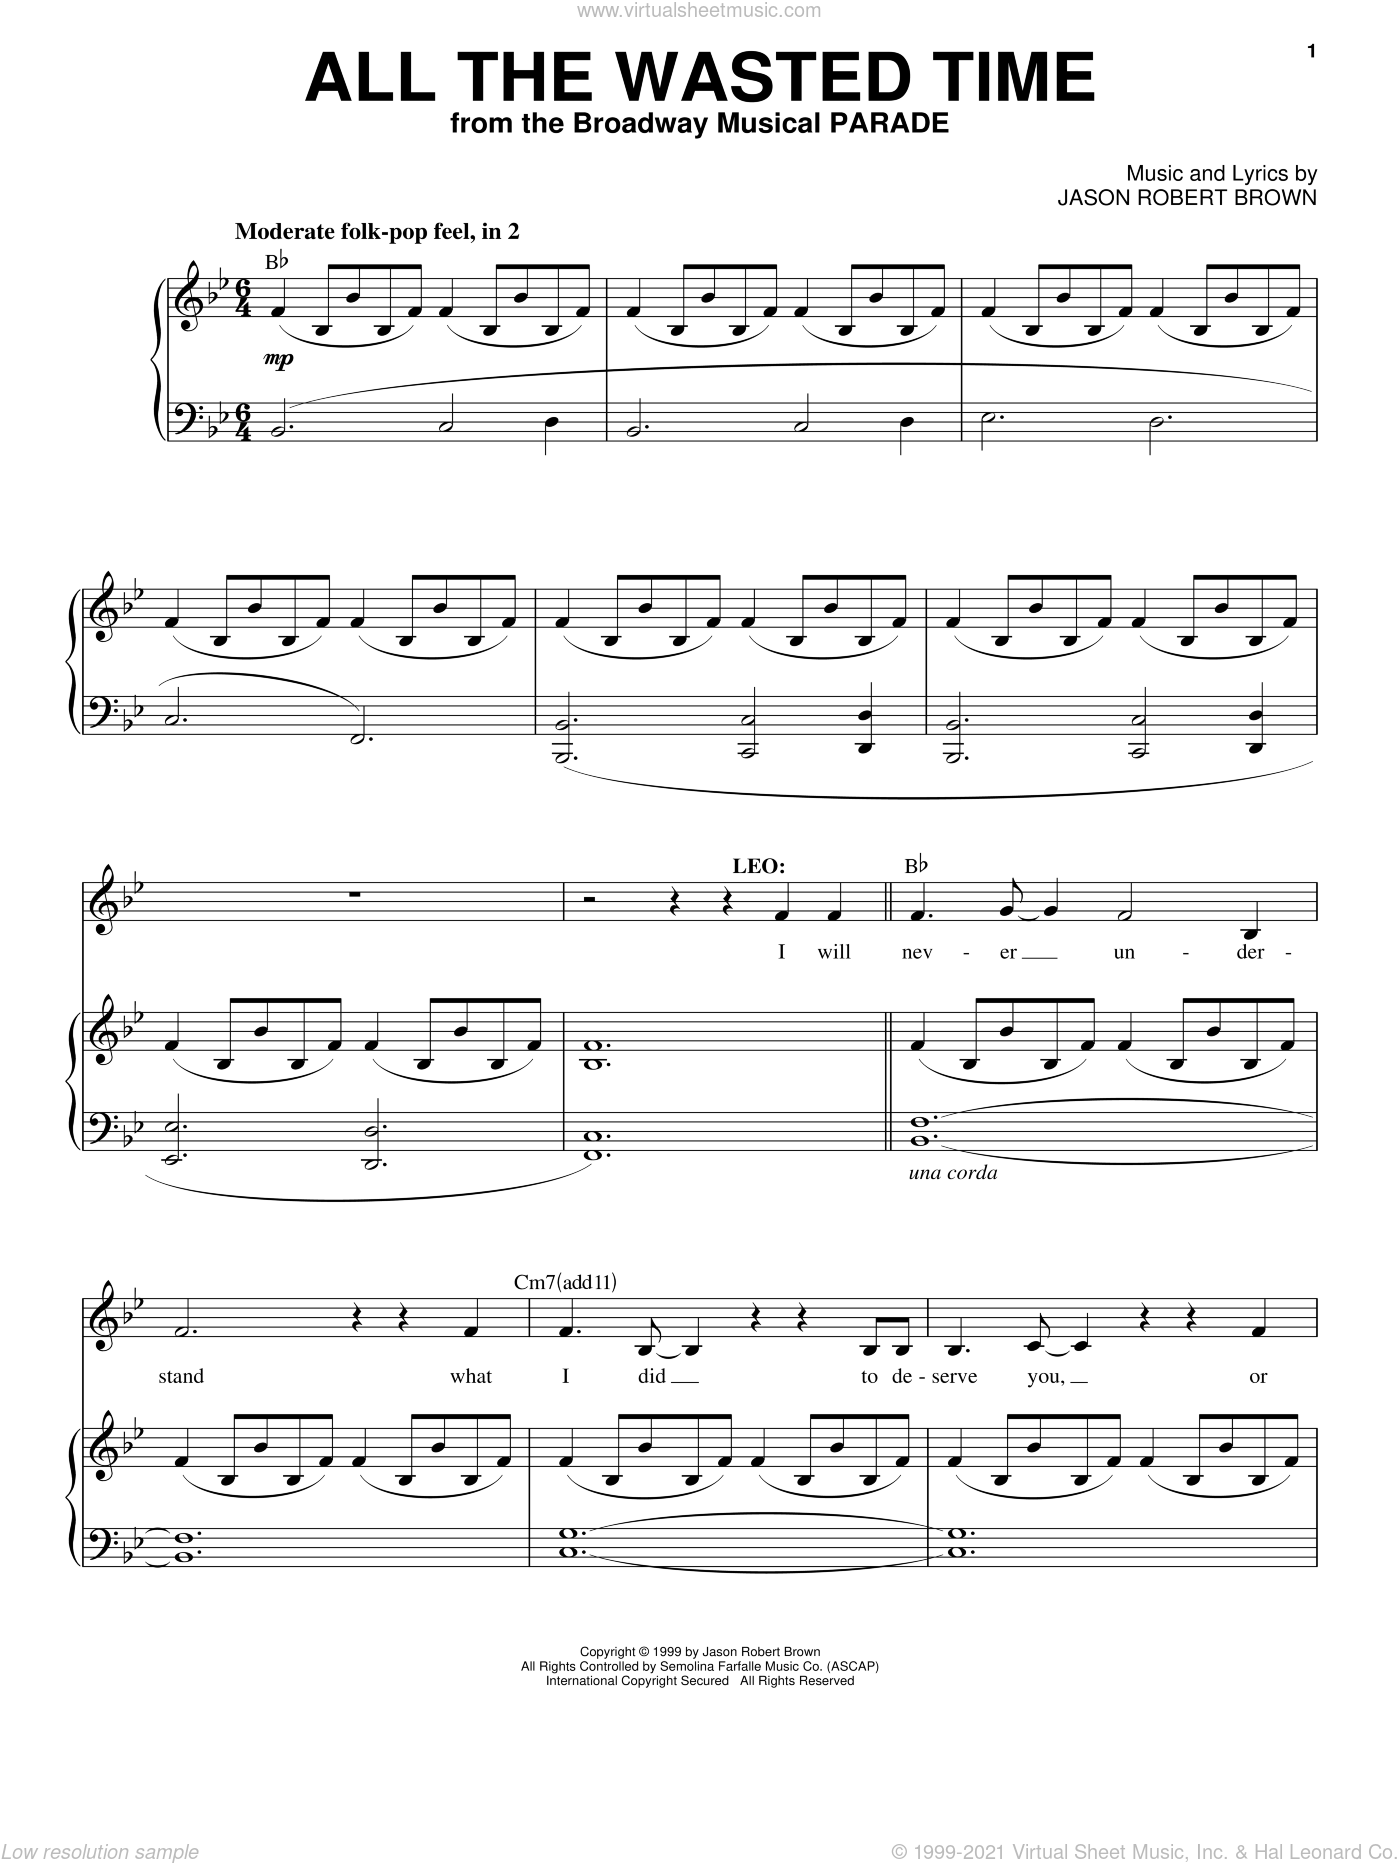 All The Wasted Time sheet music for voice and piano by Jason Robert Brown